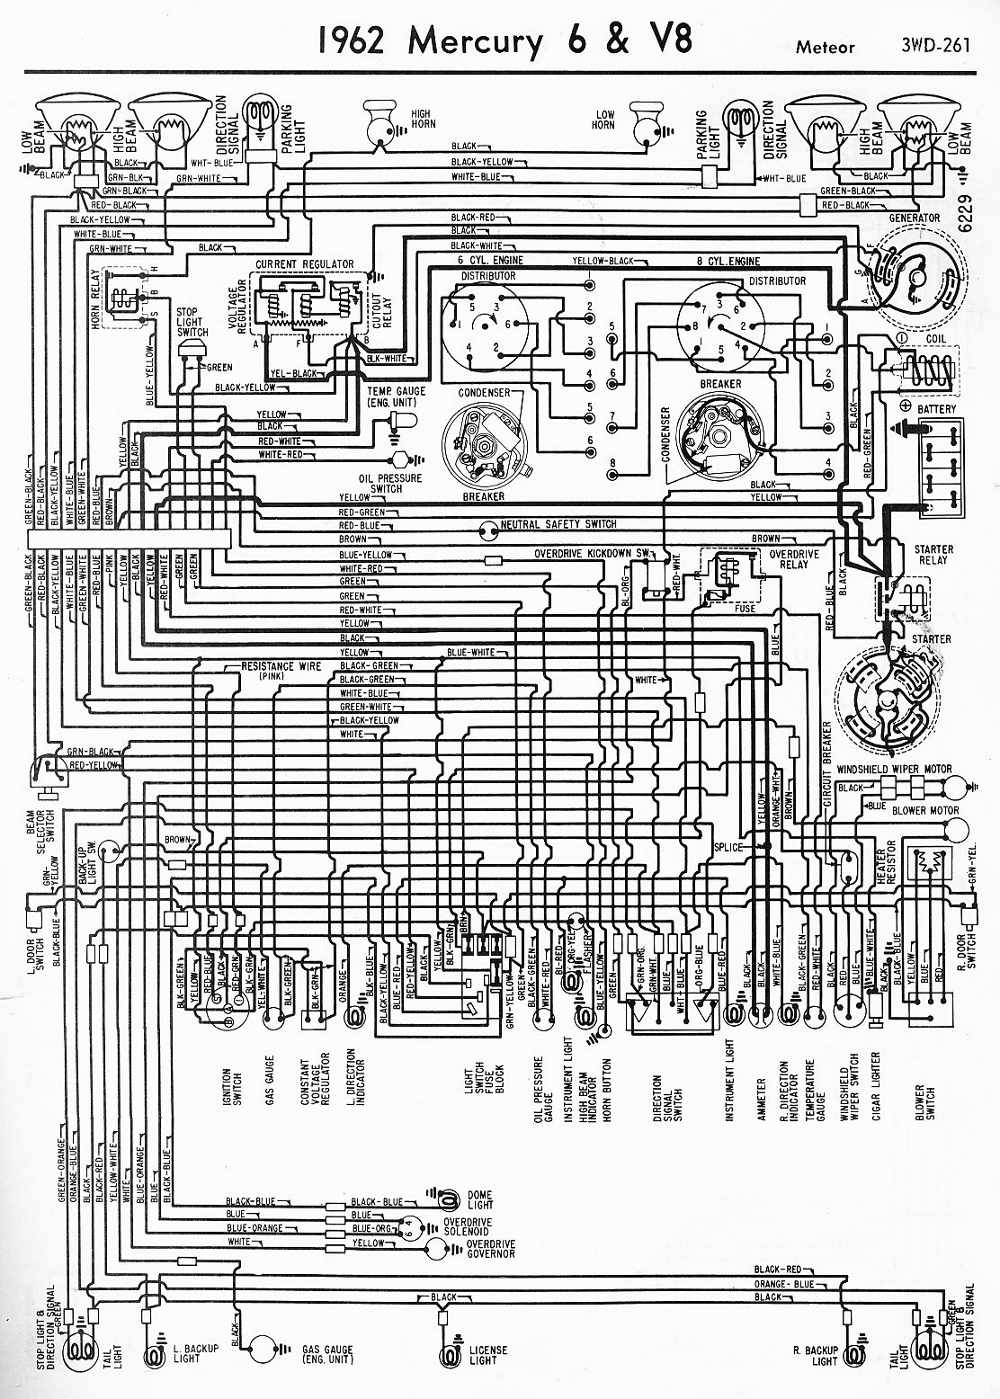 Mercury Car Manuals Wiring Diagrams PDF Fault Codes